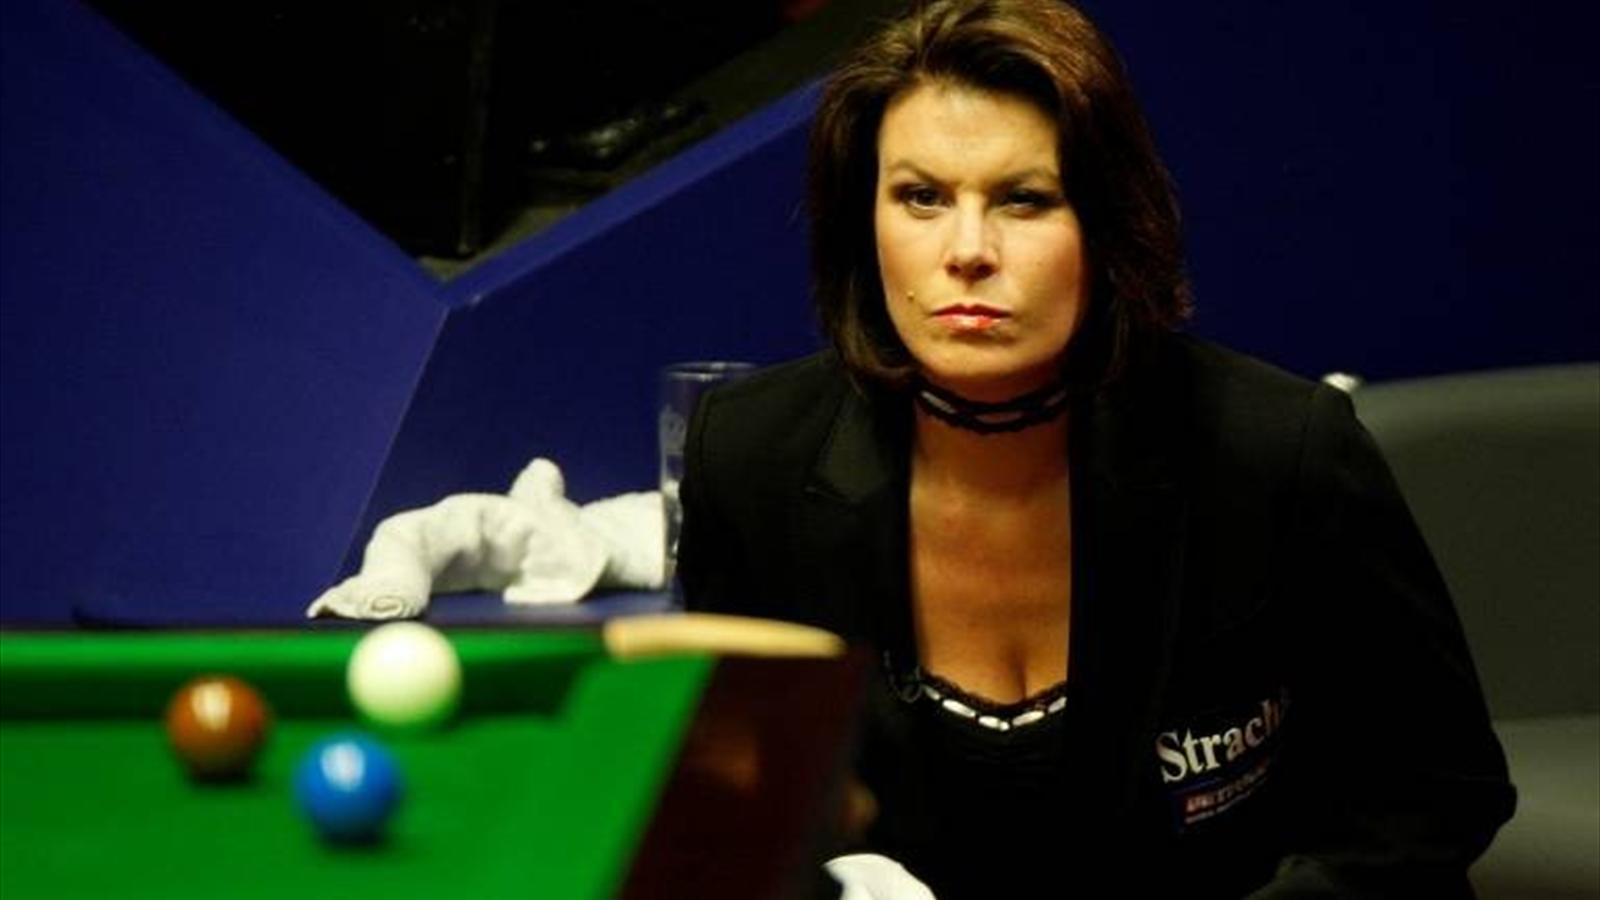 Michaela Tabb quits snooker - Snooker - Eurosport UK